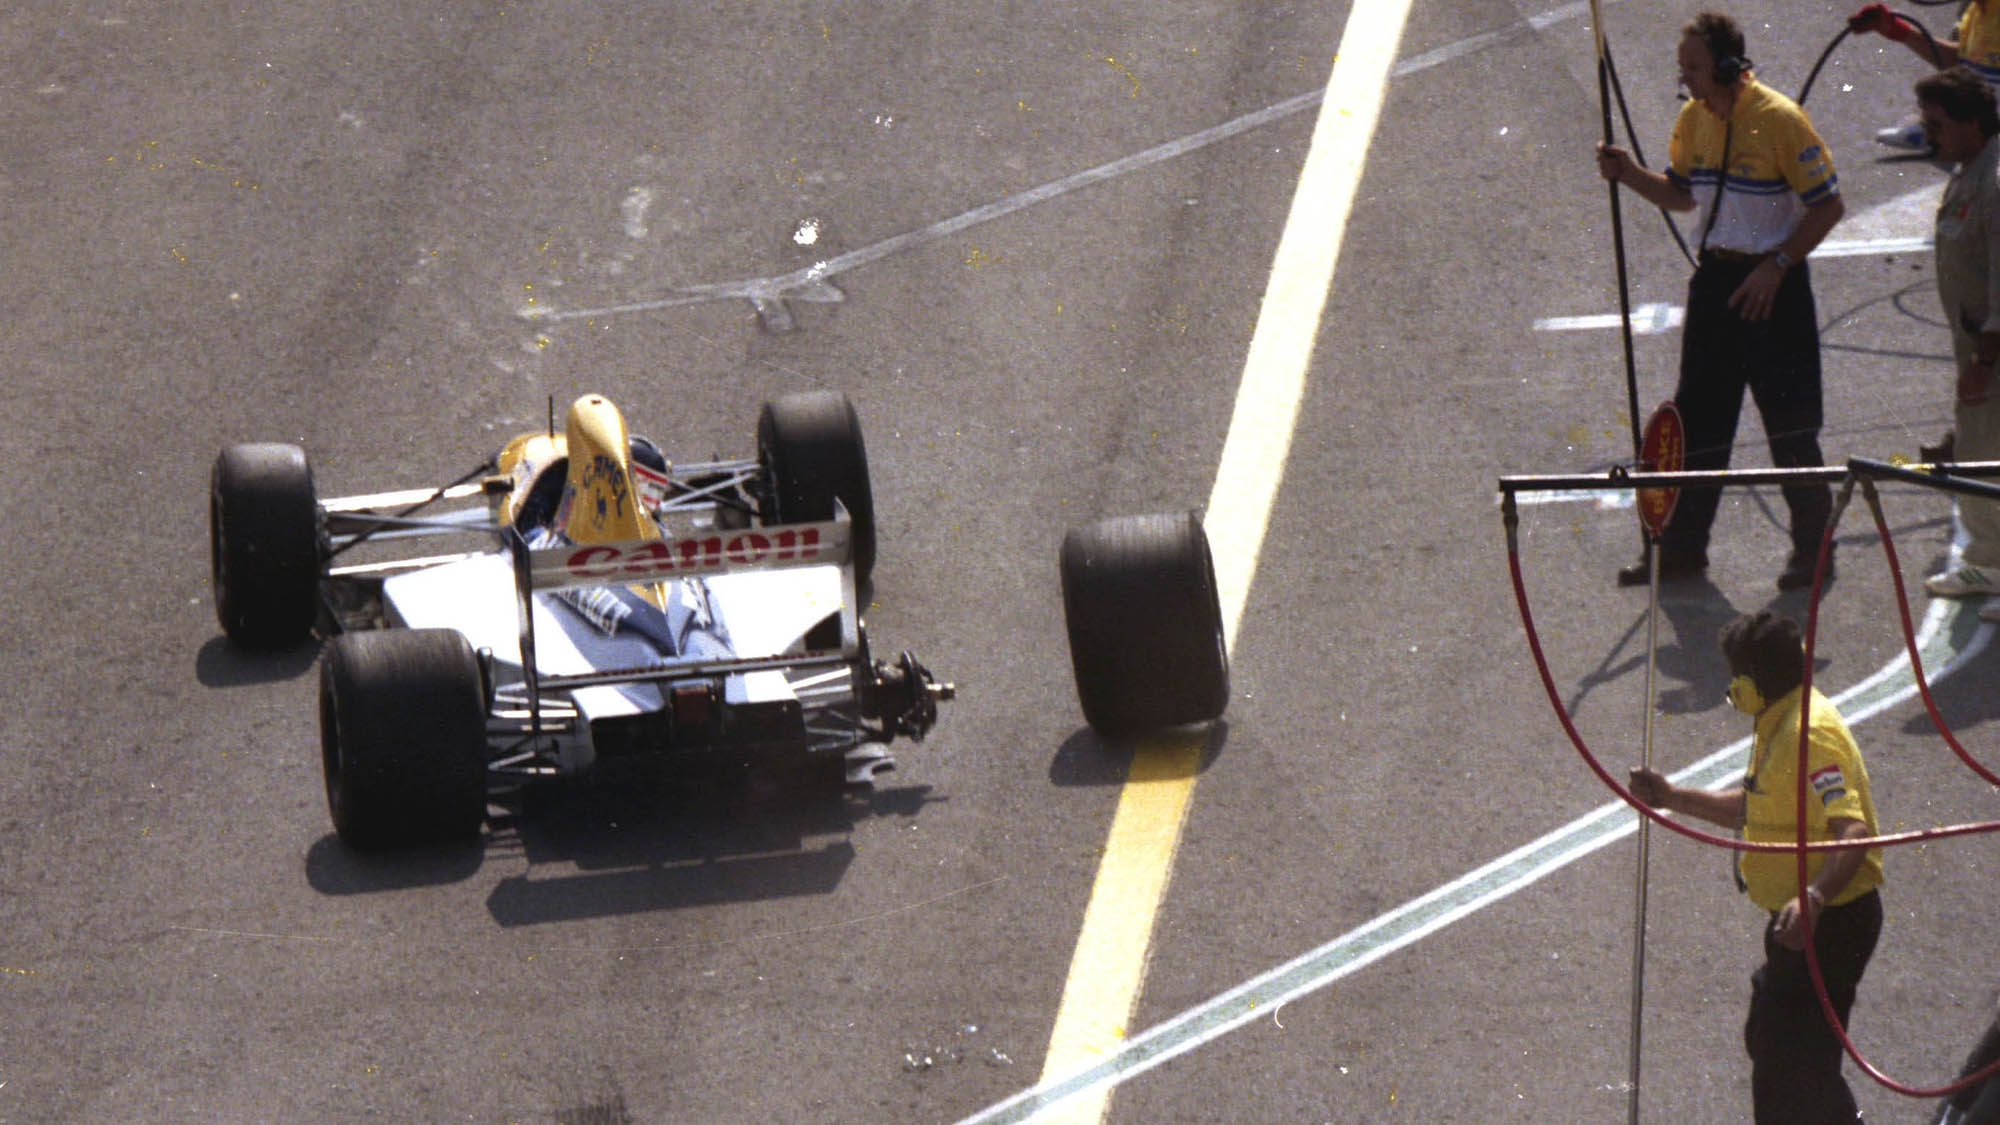 Wheel falls off Williams of Nigel Mansell at the 1991 Portuguese GP